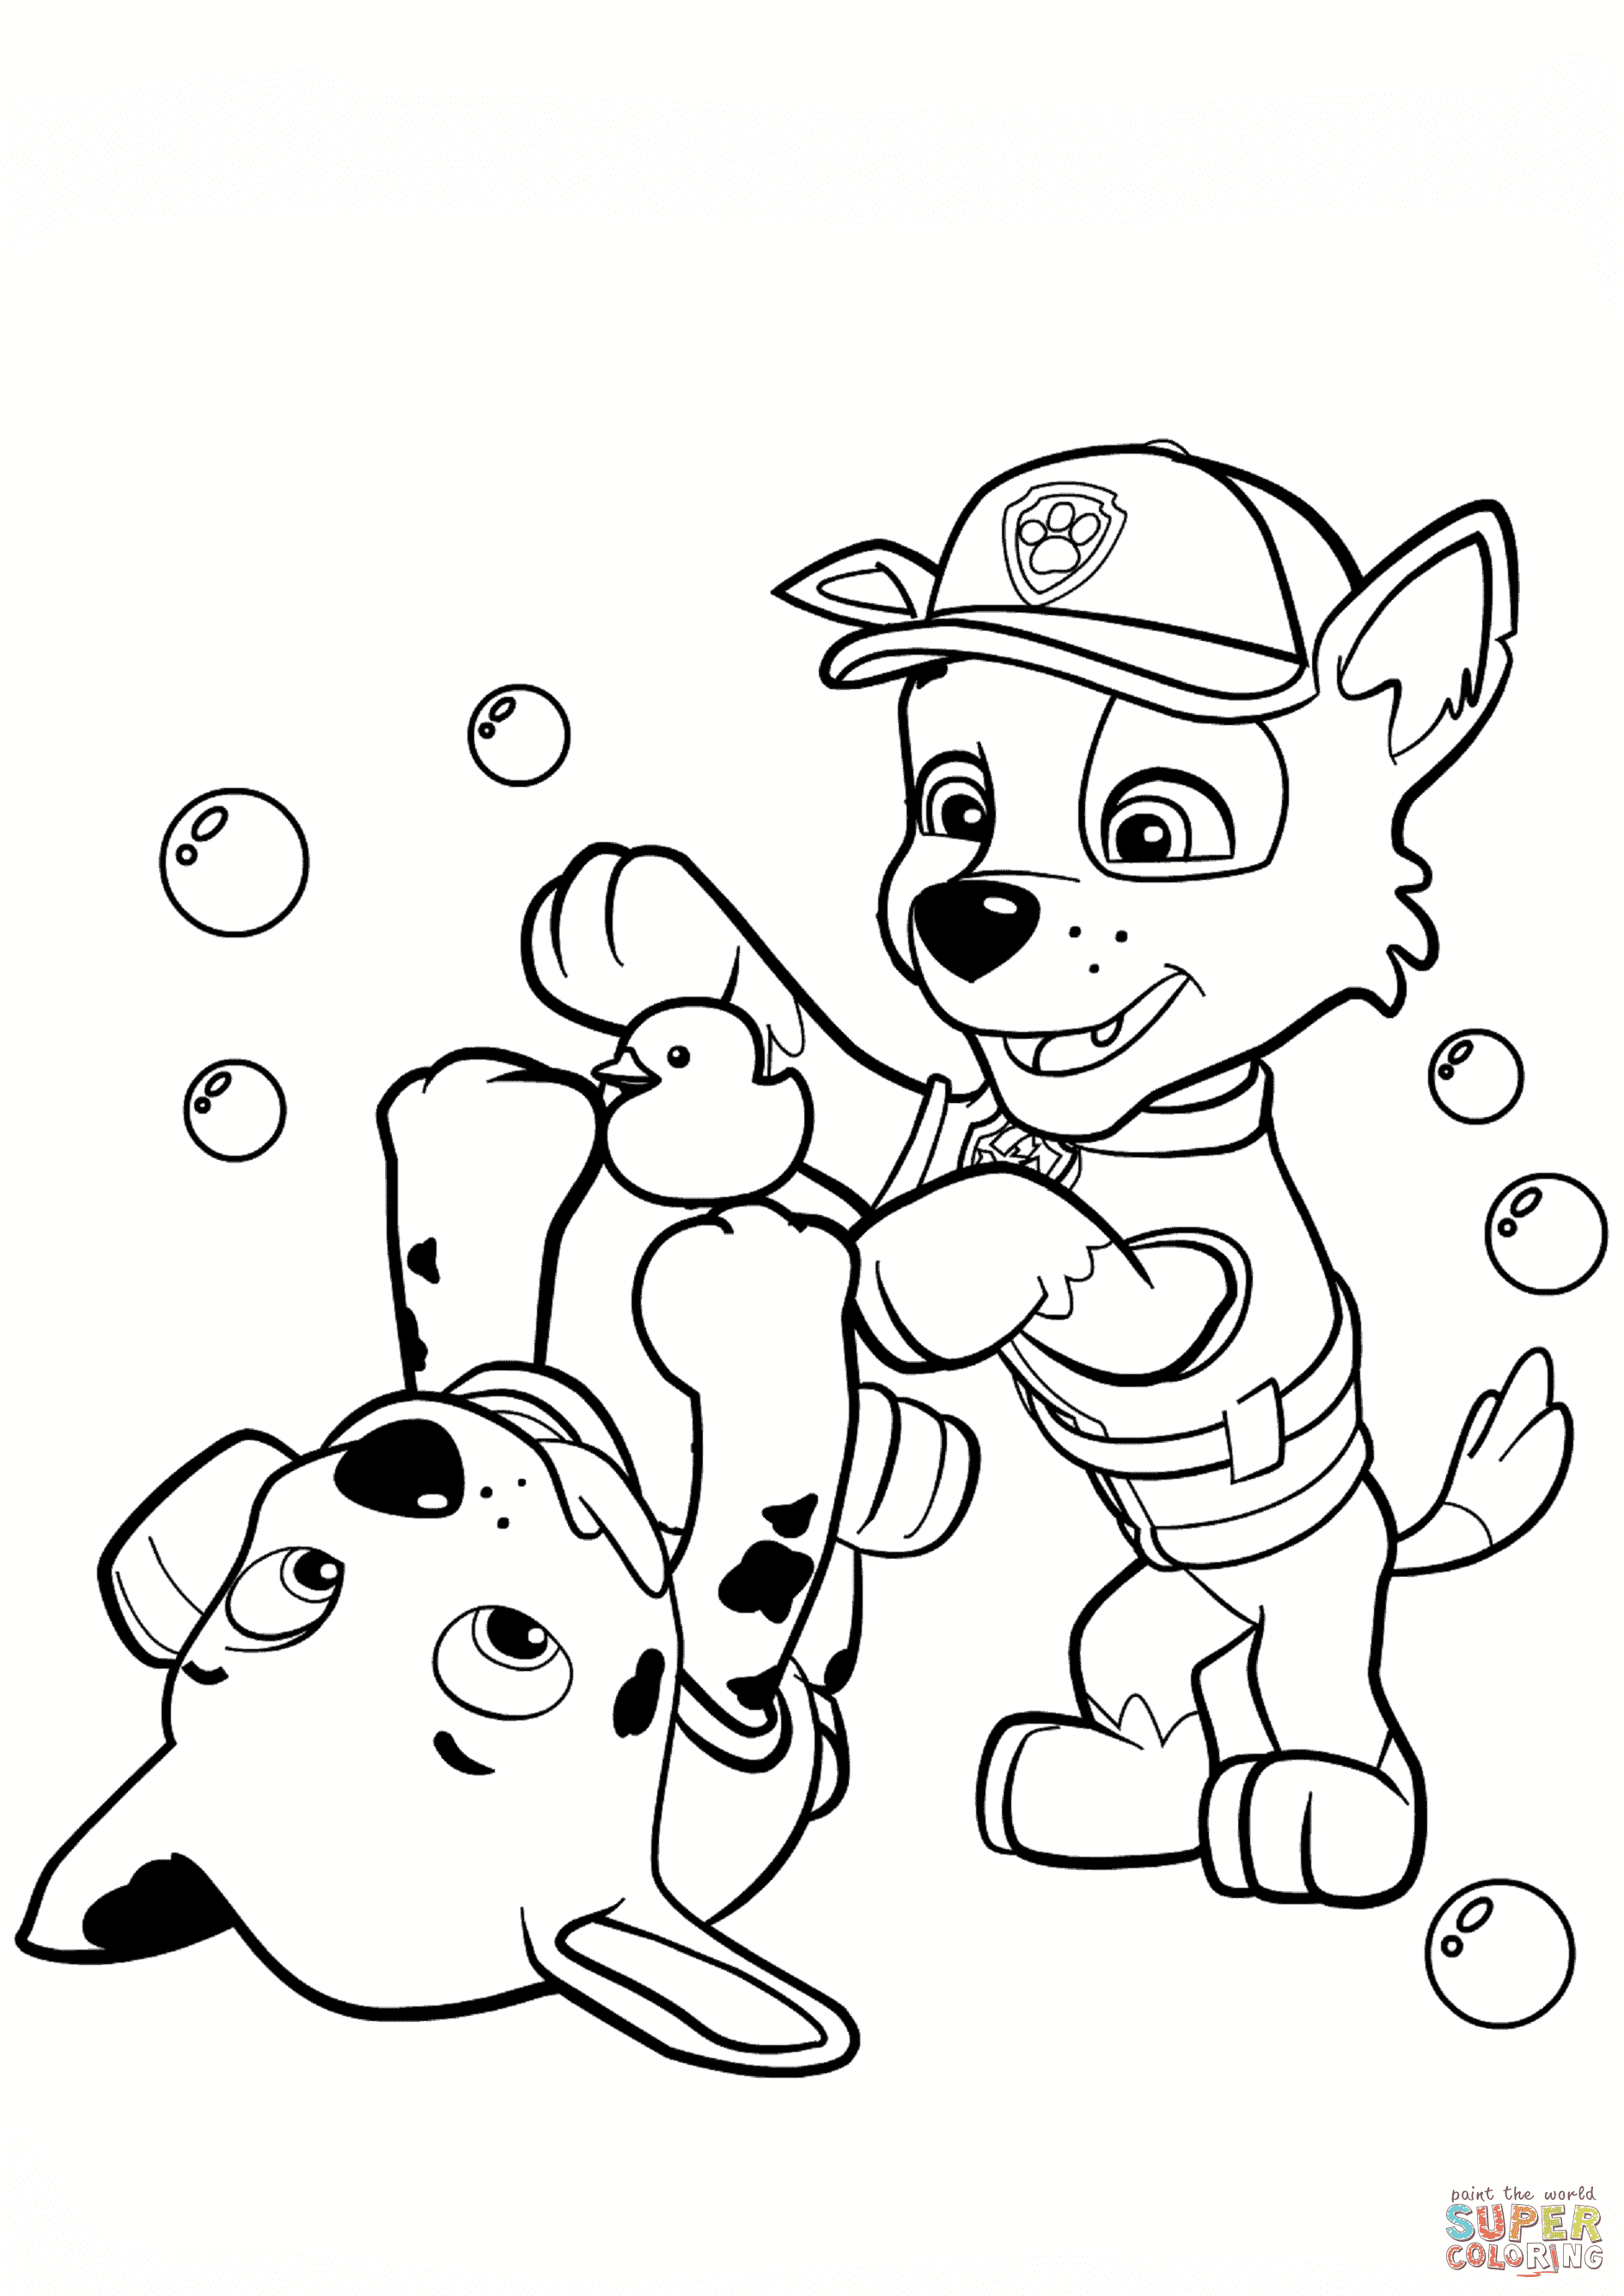 88 Top Super Coloring Pages Cartoons  Images